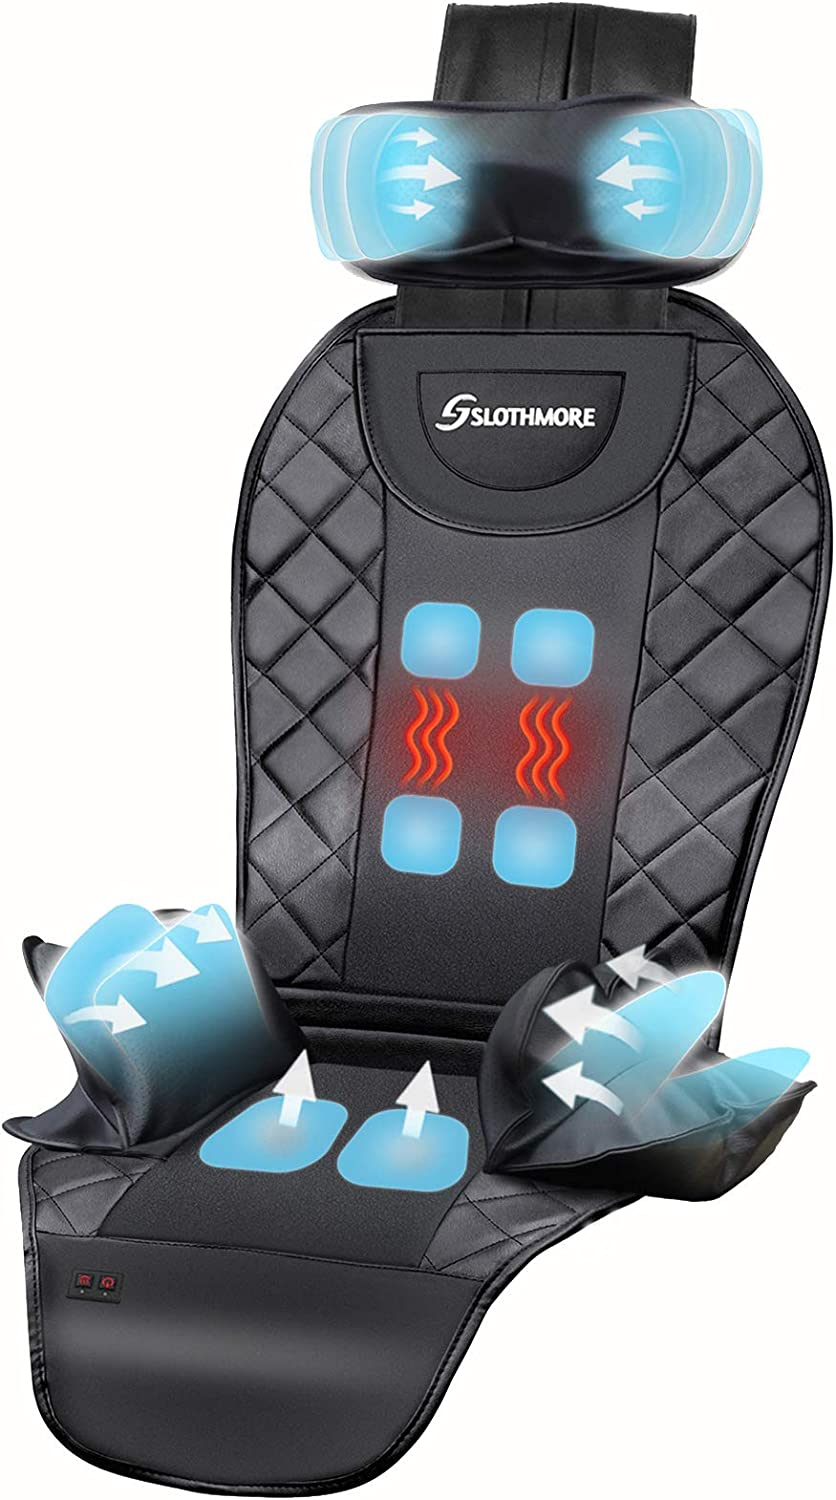 Back Massager with Air Compress & Heat-Deep Tissue Shiatsu Massage Seat Cushion for Car,Home or Office Chair Use,Electric Body Massager Helps Relieve Stress and Fatigue for Neck,Back and Hips